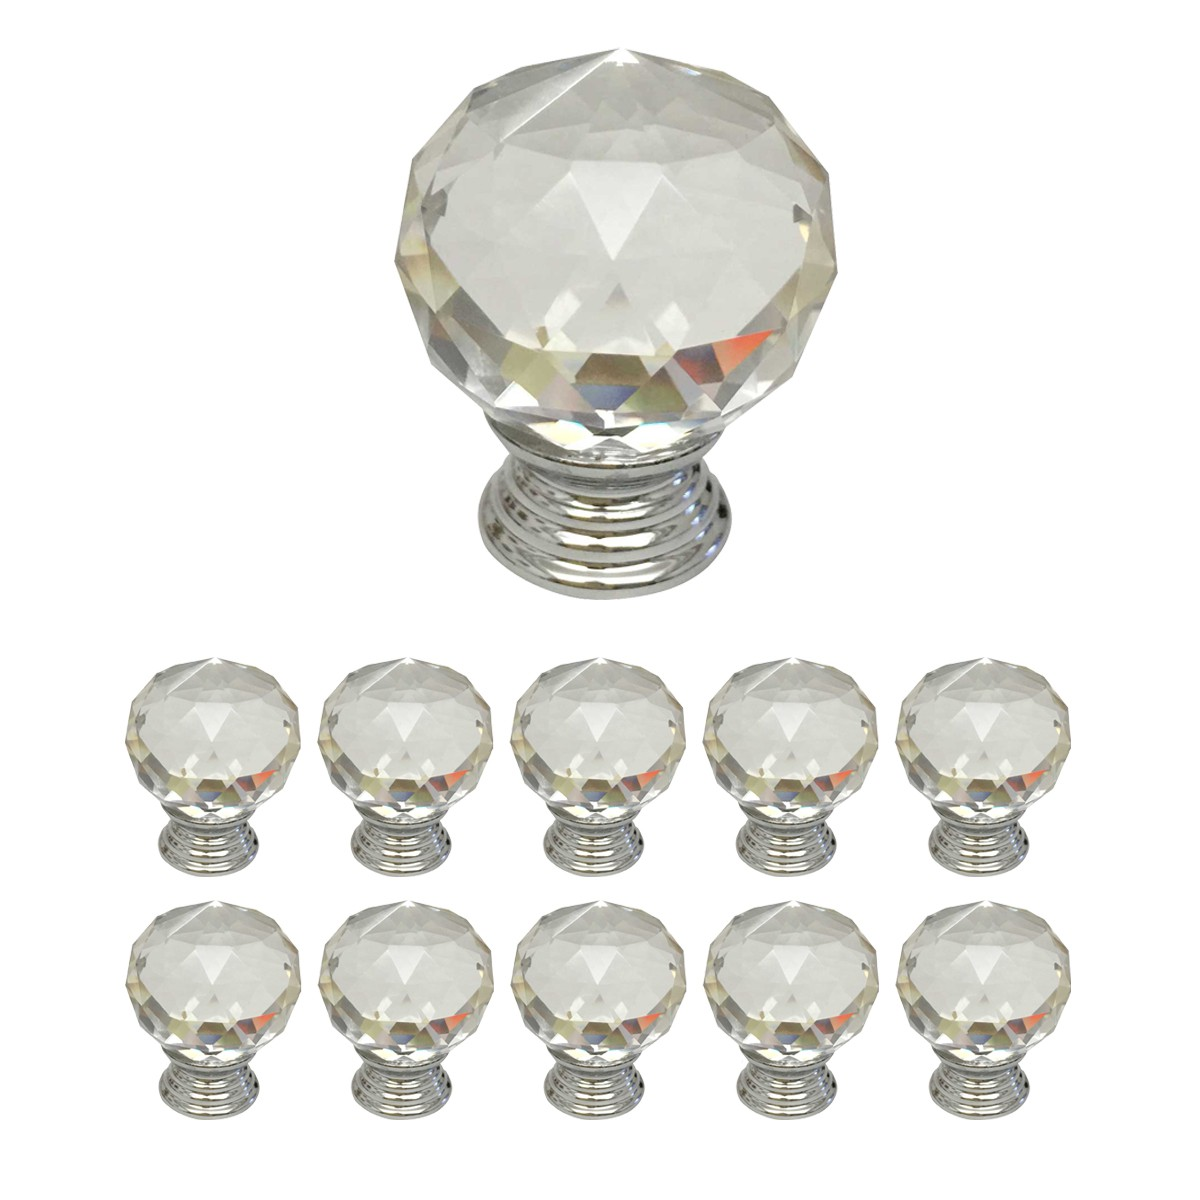 ... U003cPREu003eClear Glass Cabinet Knobs 30mm Round, 1.5 Inch Projection 10 Pcsu003c  ...